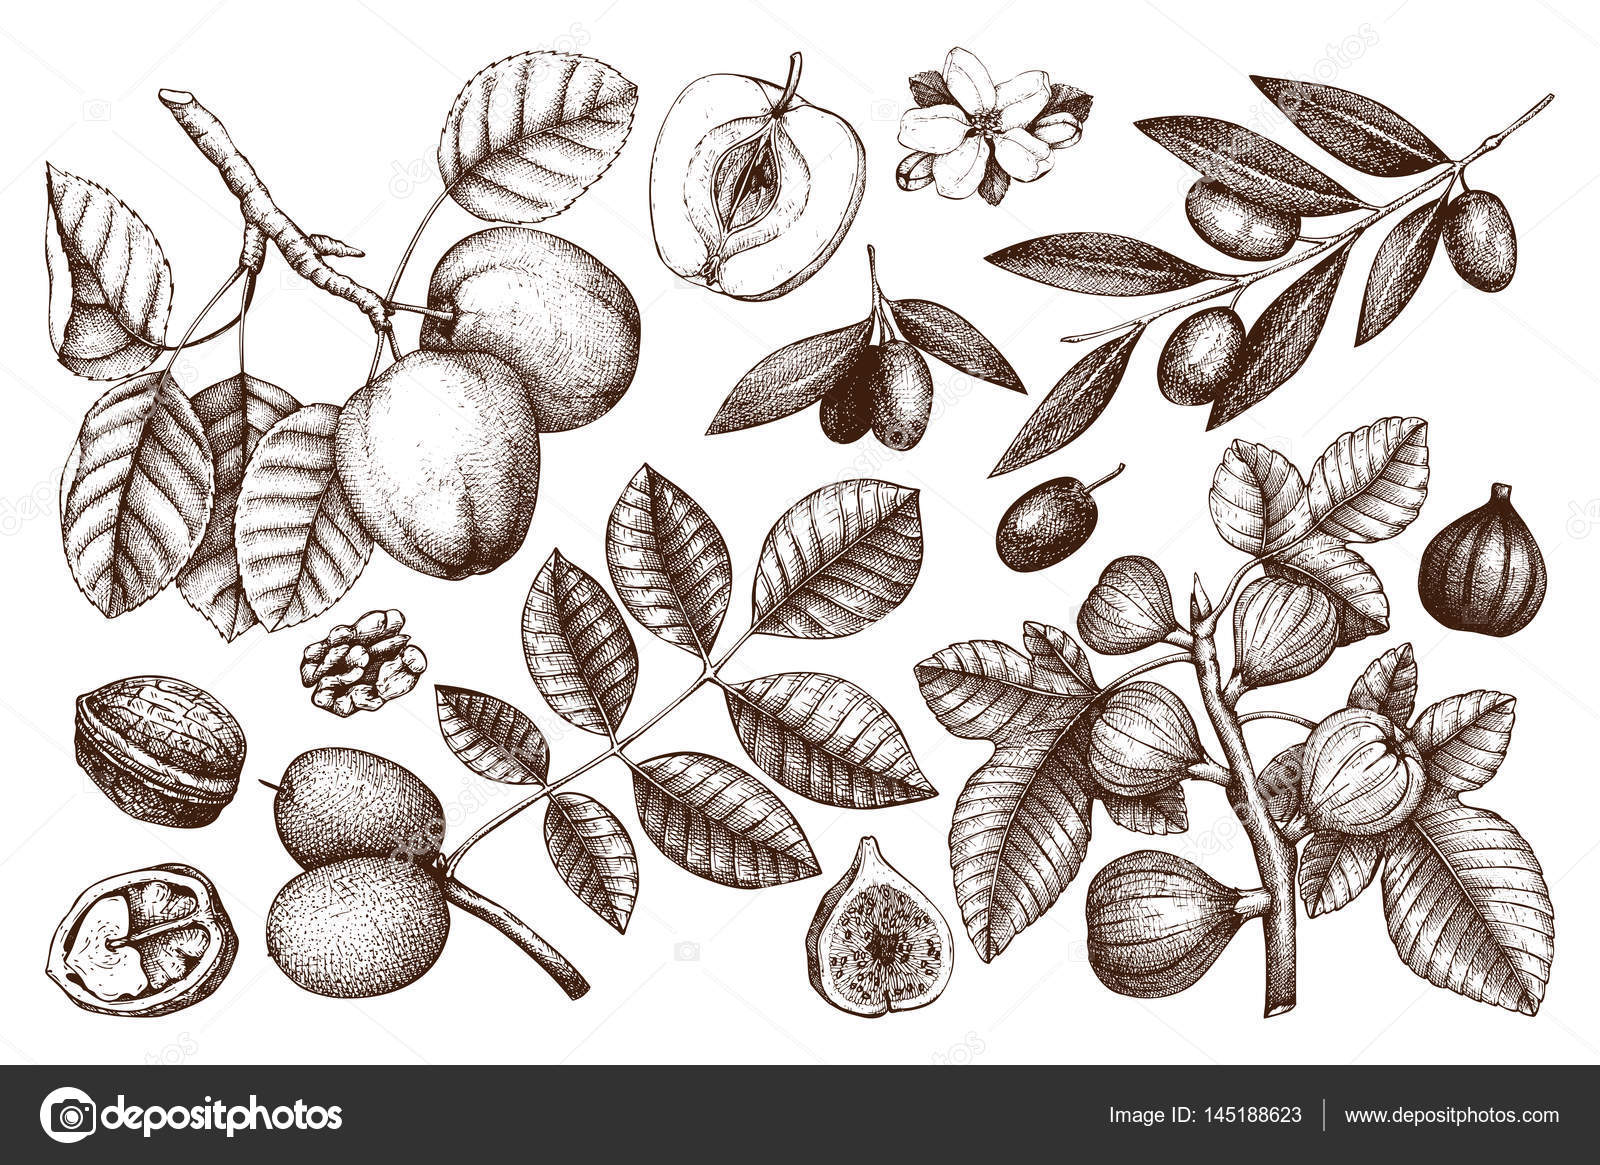 Collection of hand drawn trees illustration stock vector collection of hand drawn trees illustration stock vector altavistaventures Image collections